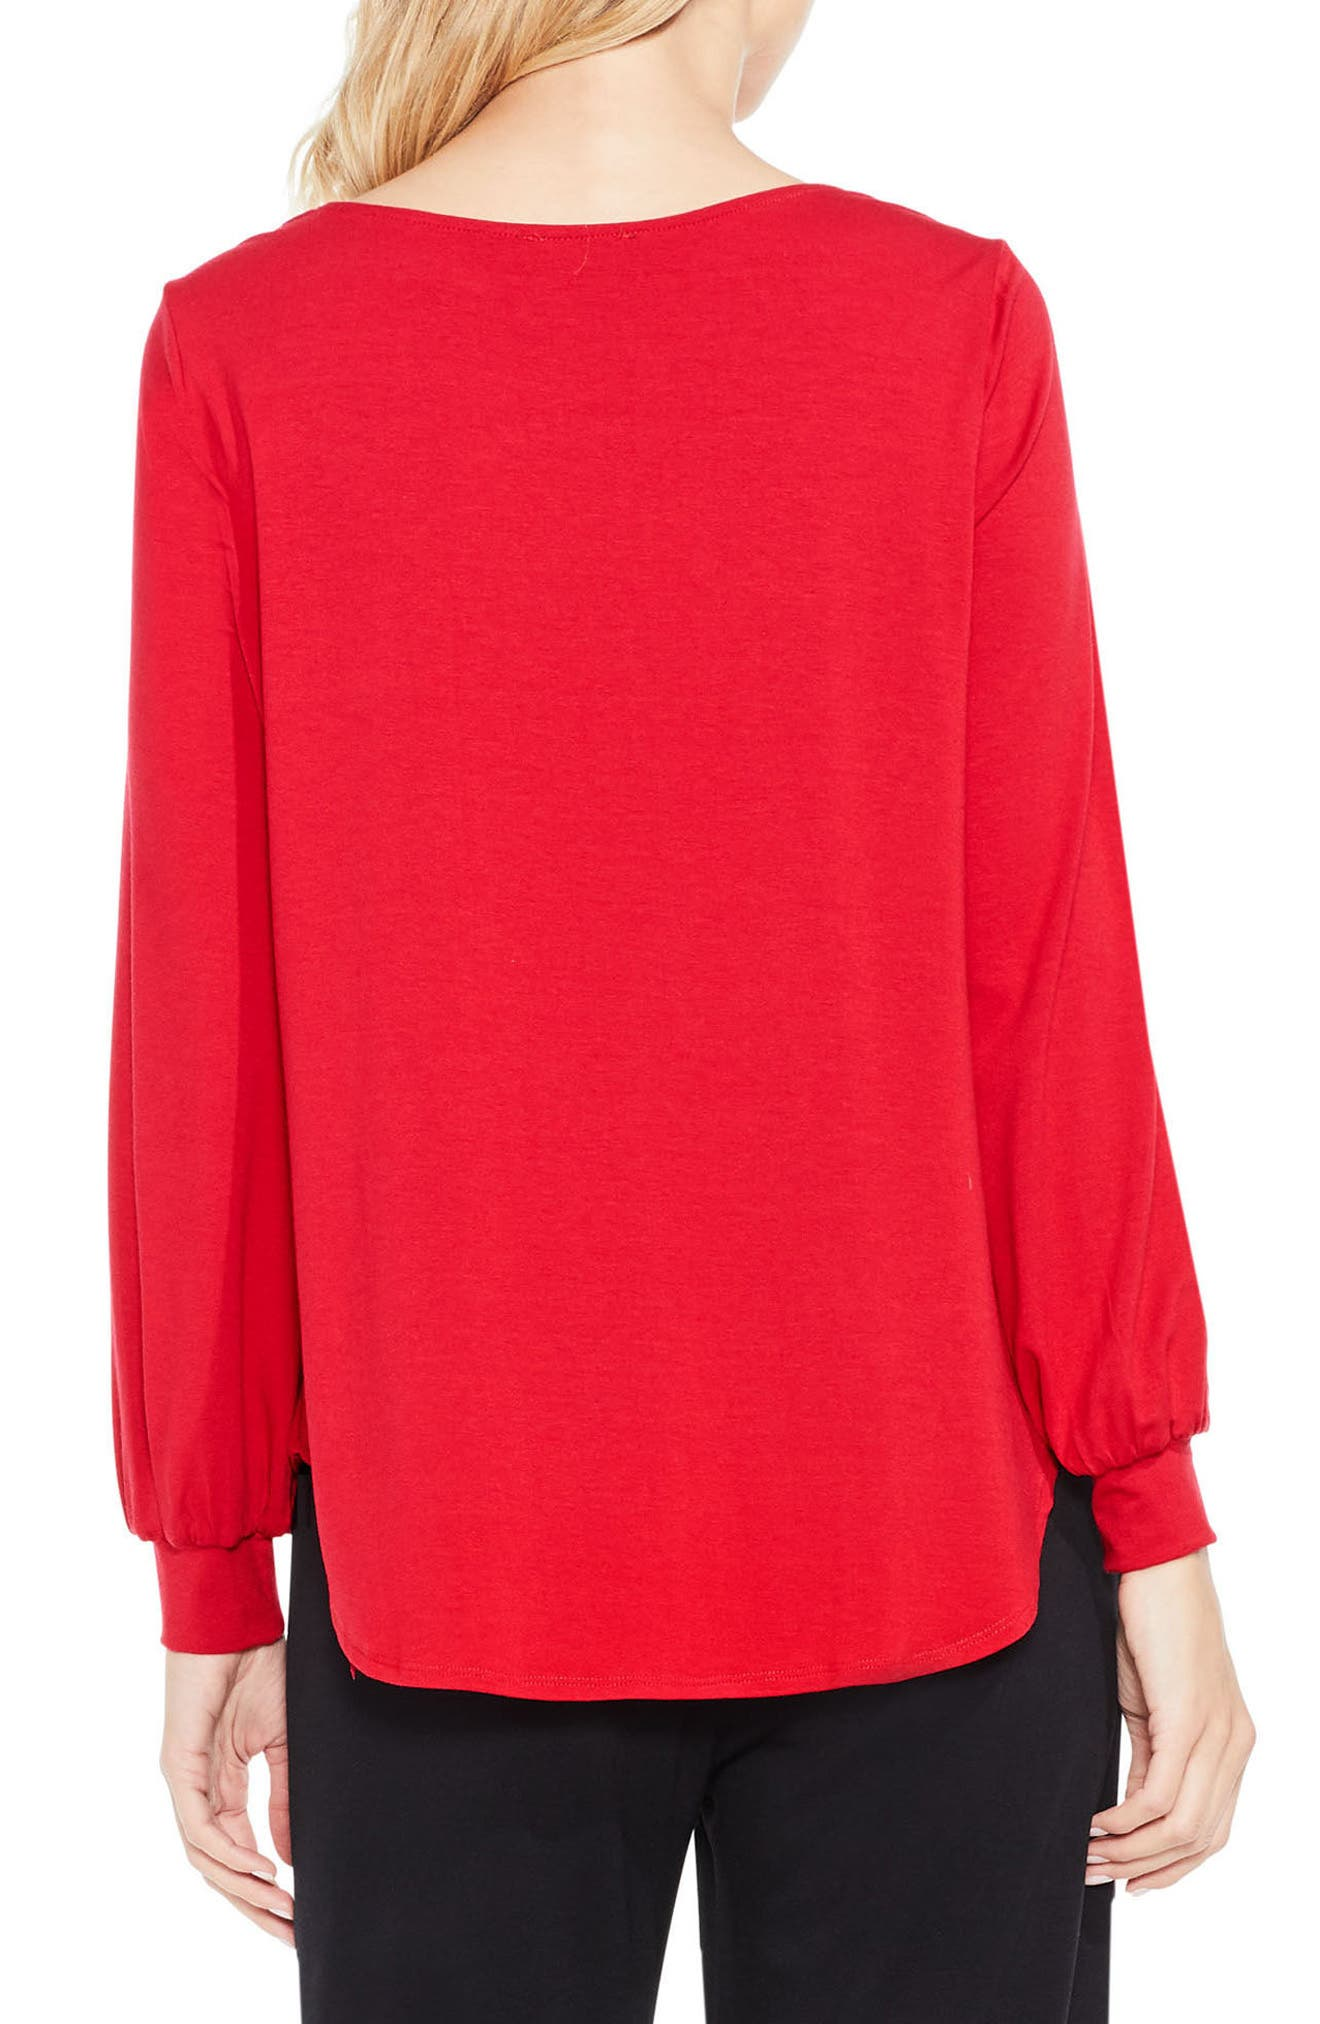 Alternate Image 3  - Vince Camuto Long Sleeve Foldover Mix Media Blouse